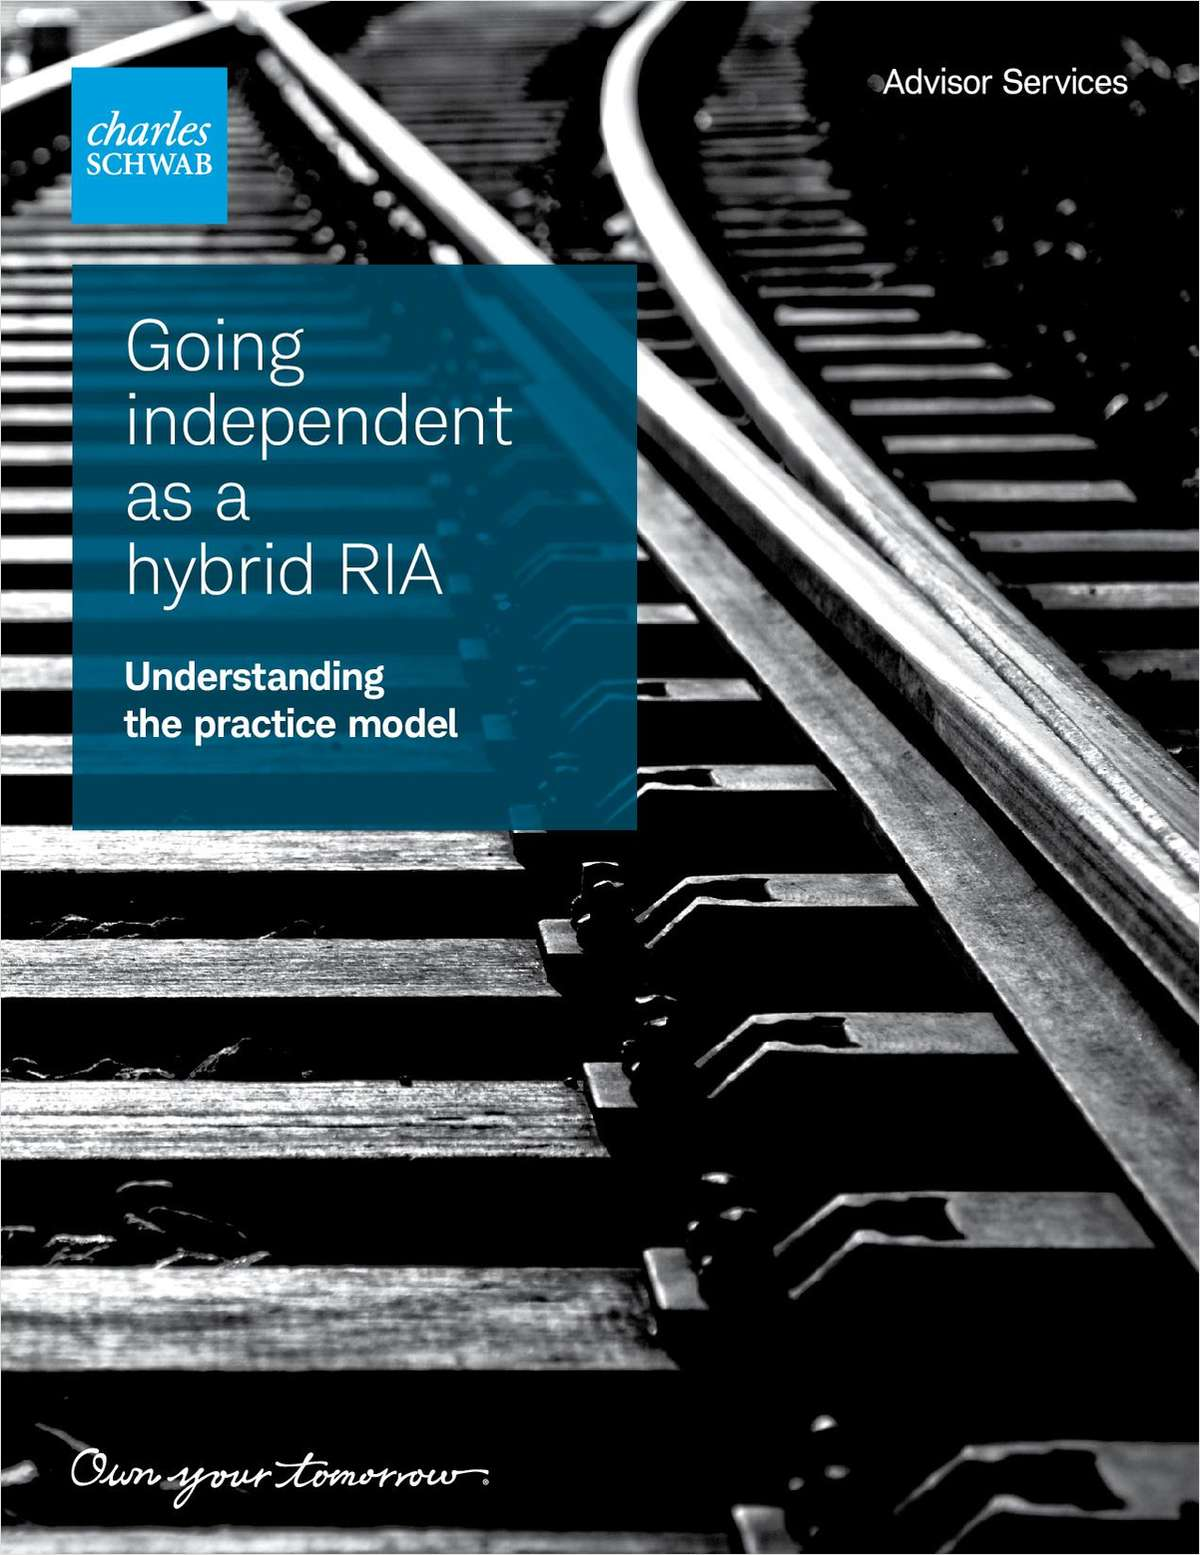 Discovering the hybrid RIA model